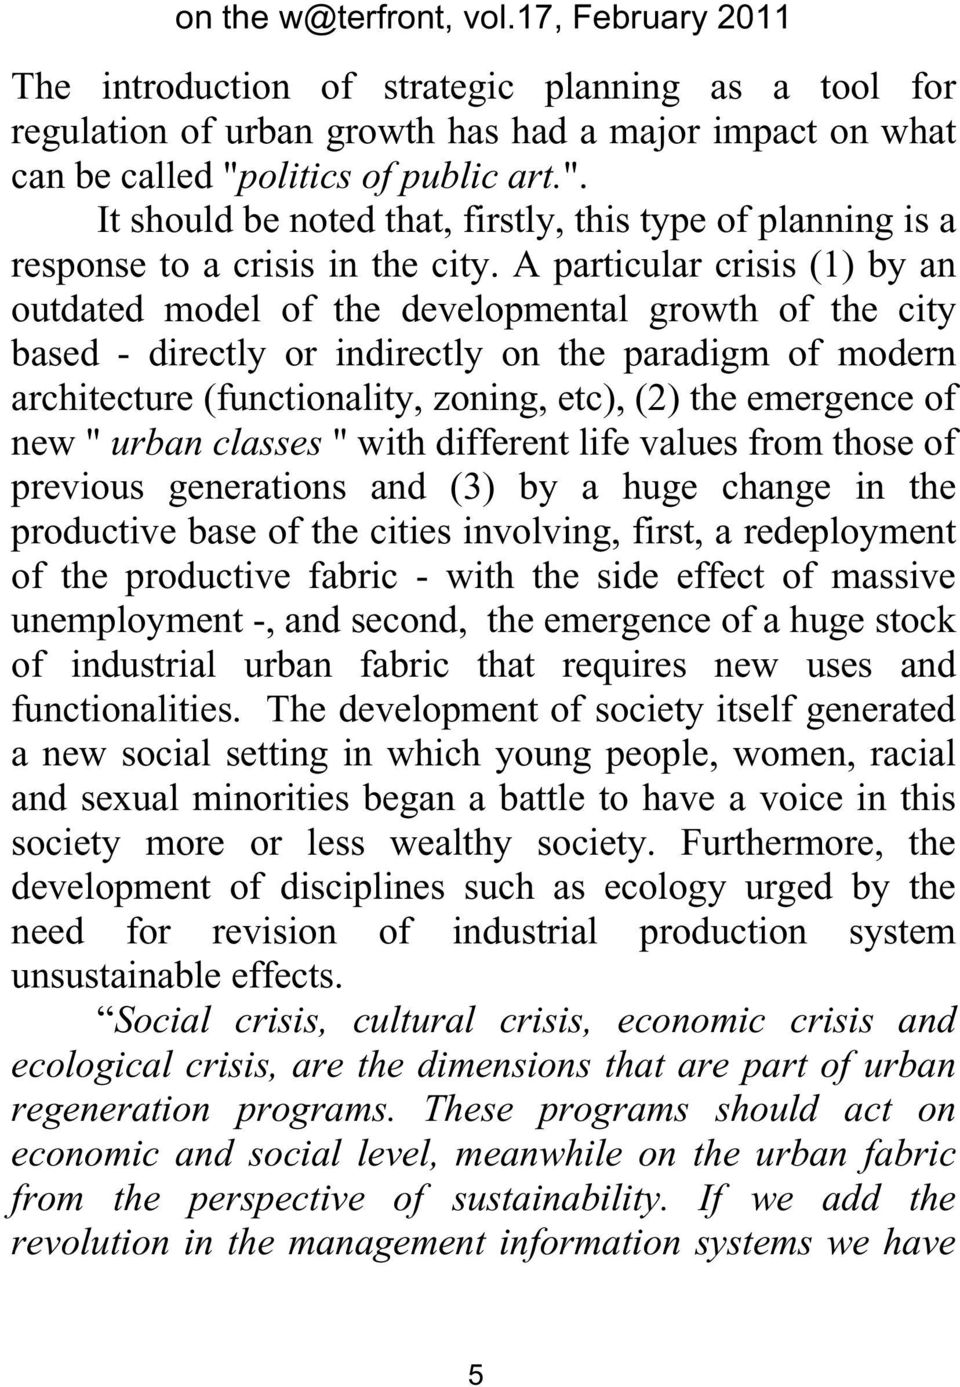 A particular crisis (1) by an outdated model of the developmental growth of the city based - directly or indirectly on the paradigm of modern architecture (functionality, zoning, etc), (2) the